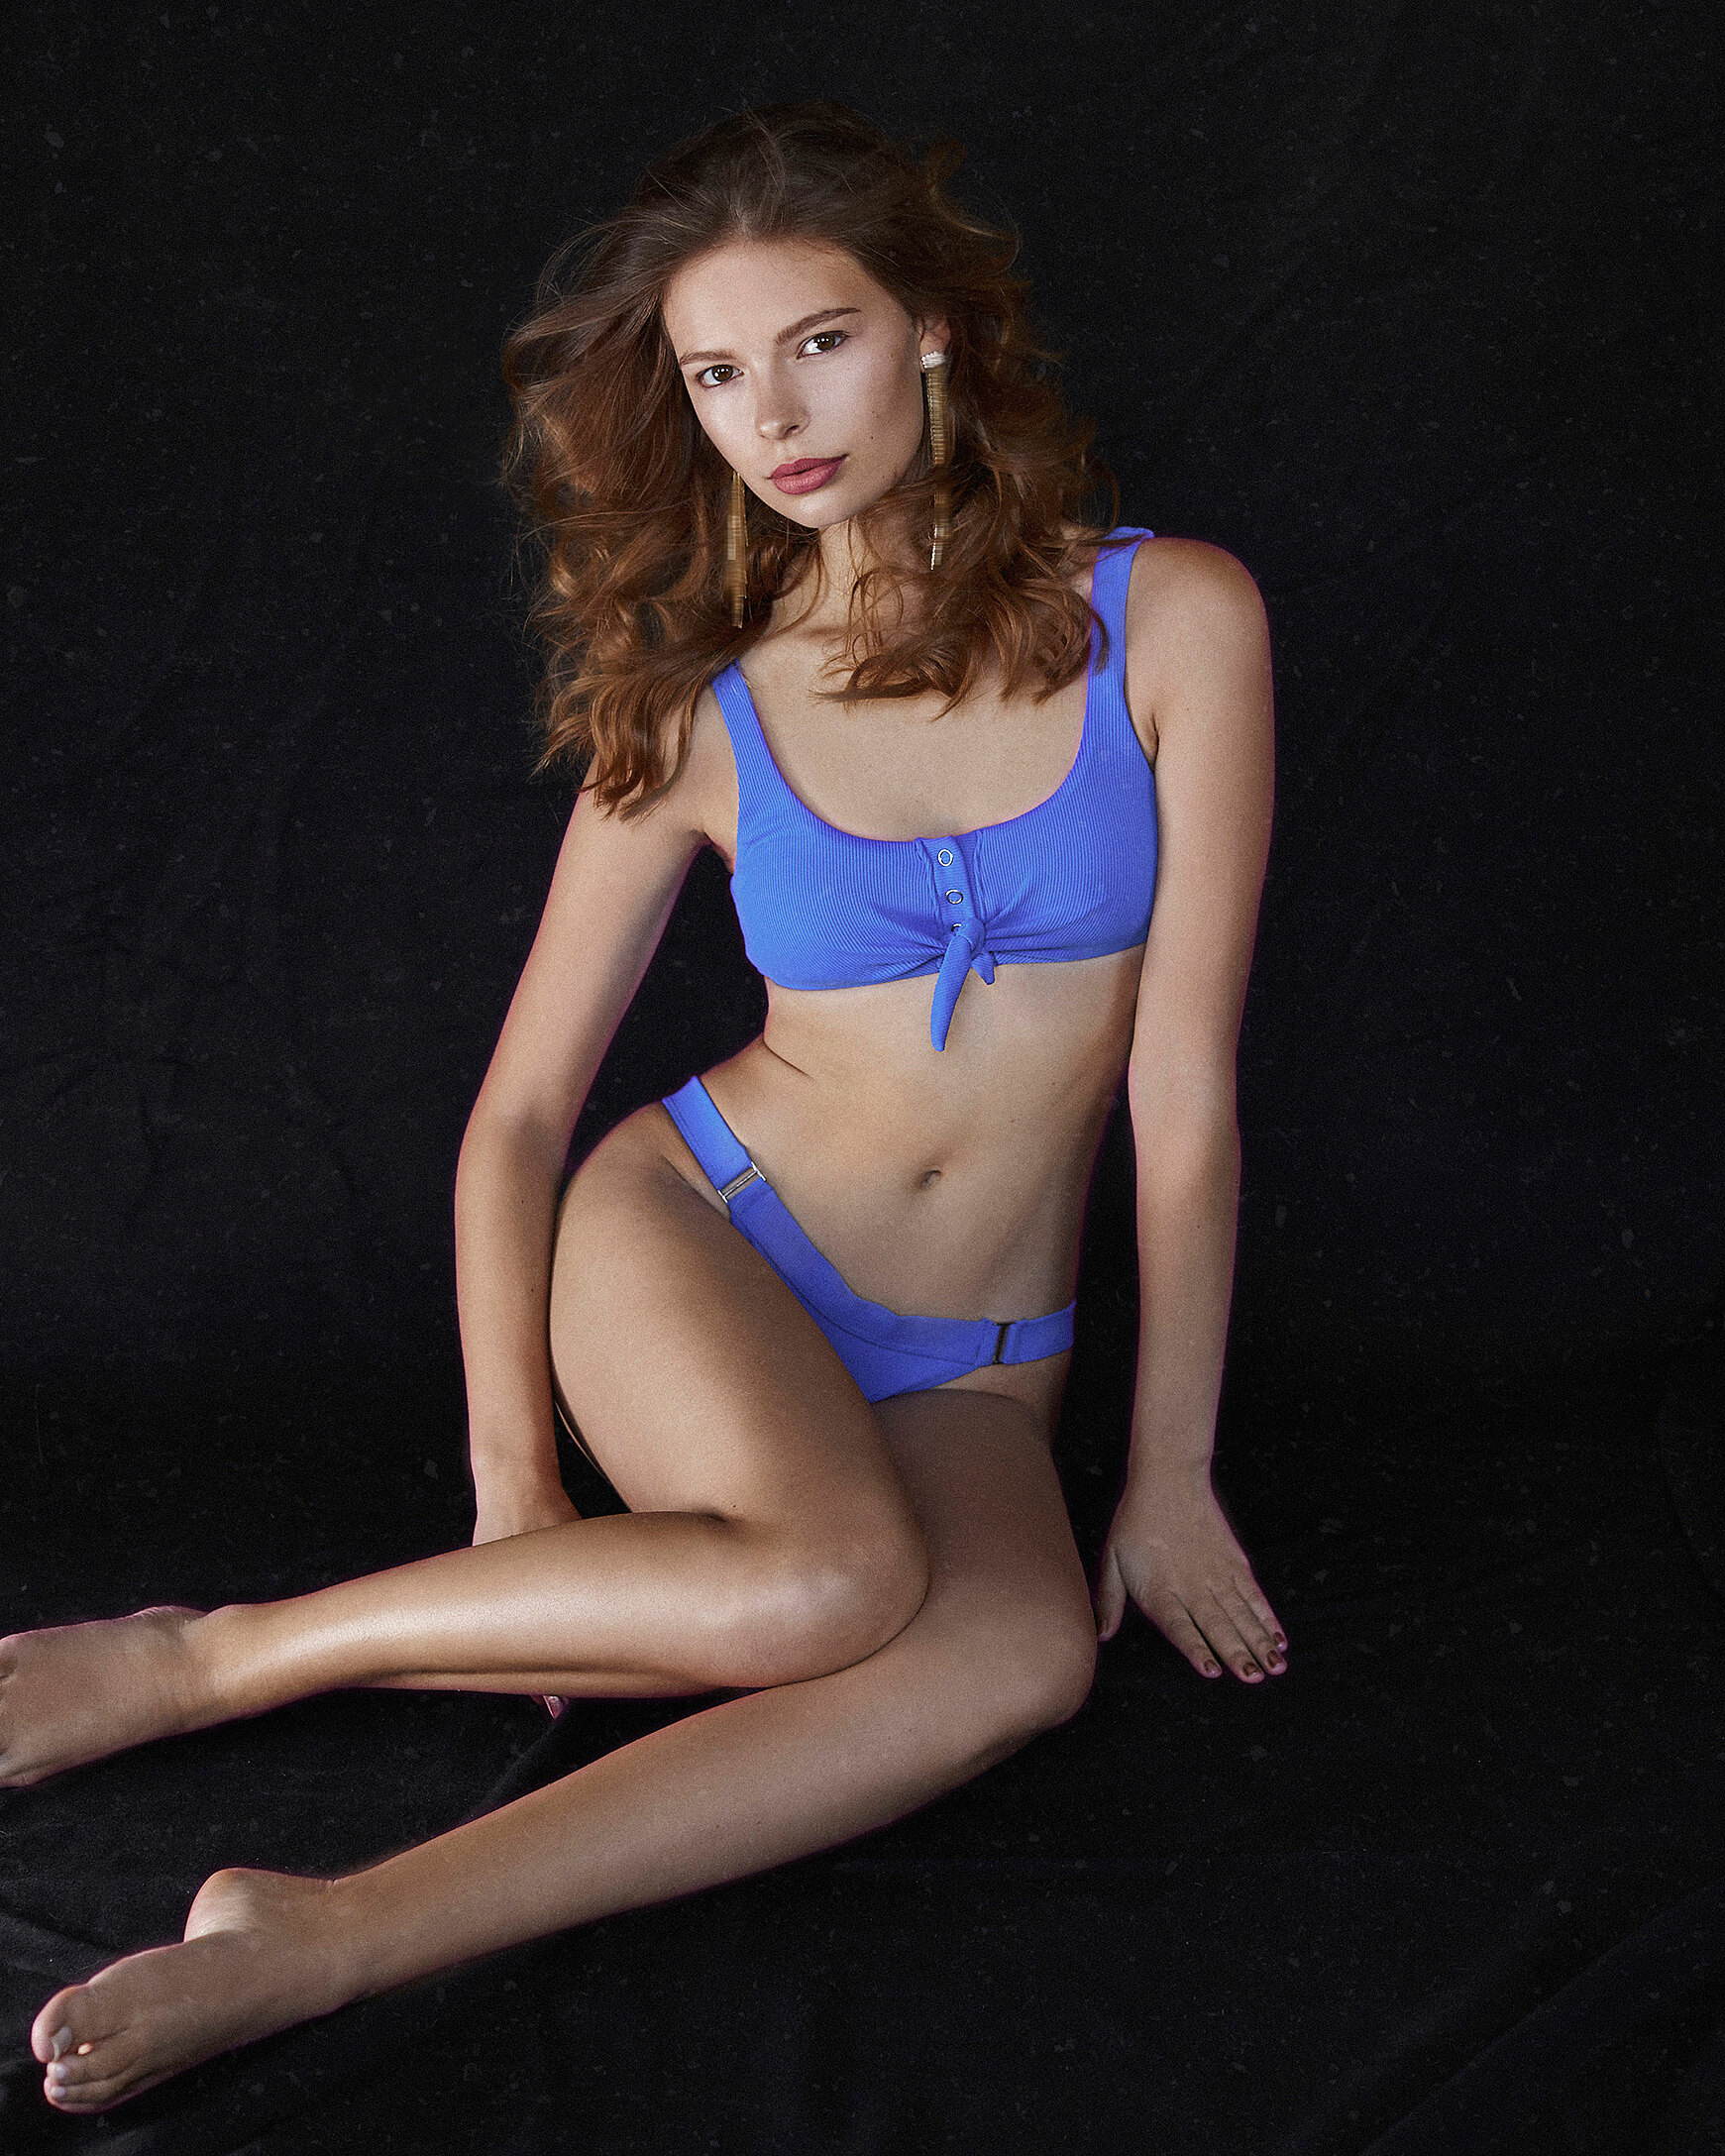 A light brown hair model with long earrings and a blue bikini who sit on a black background